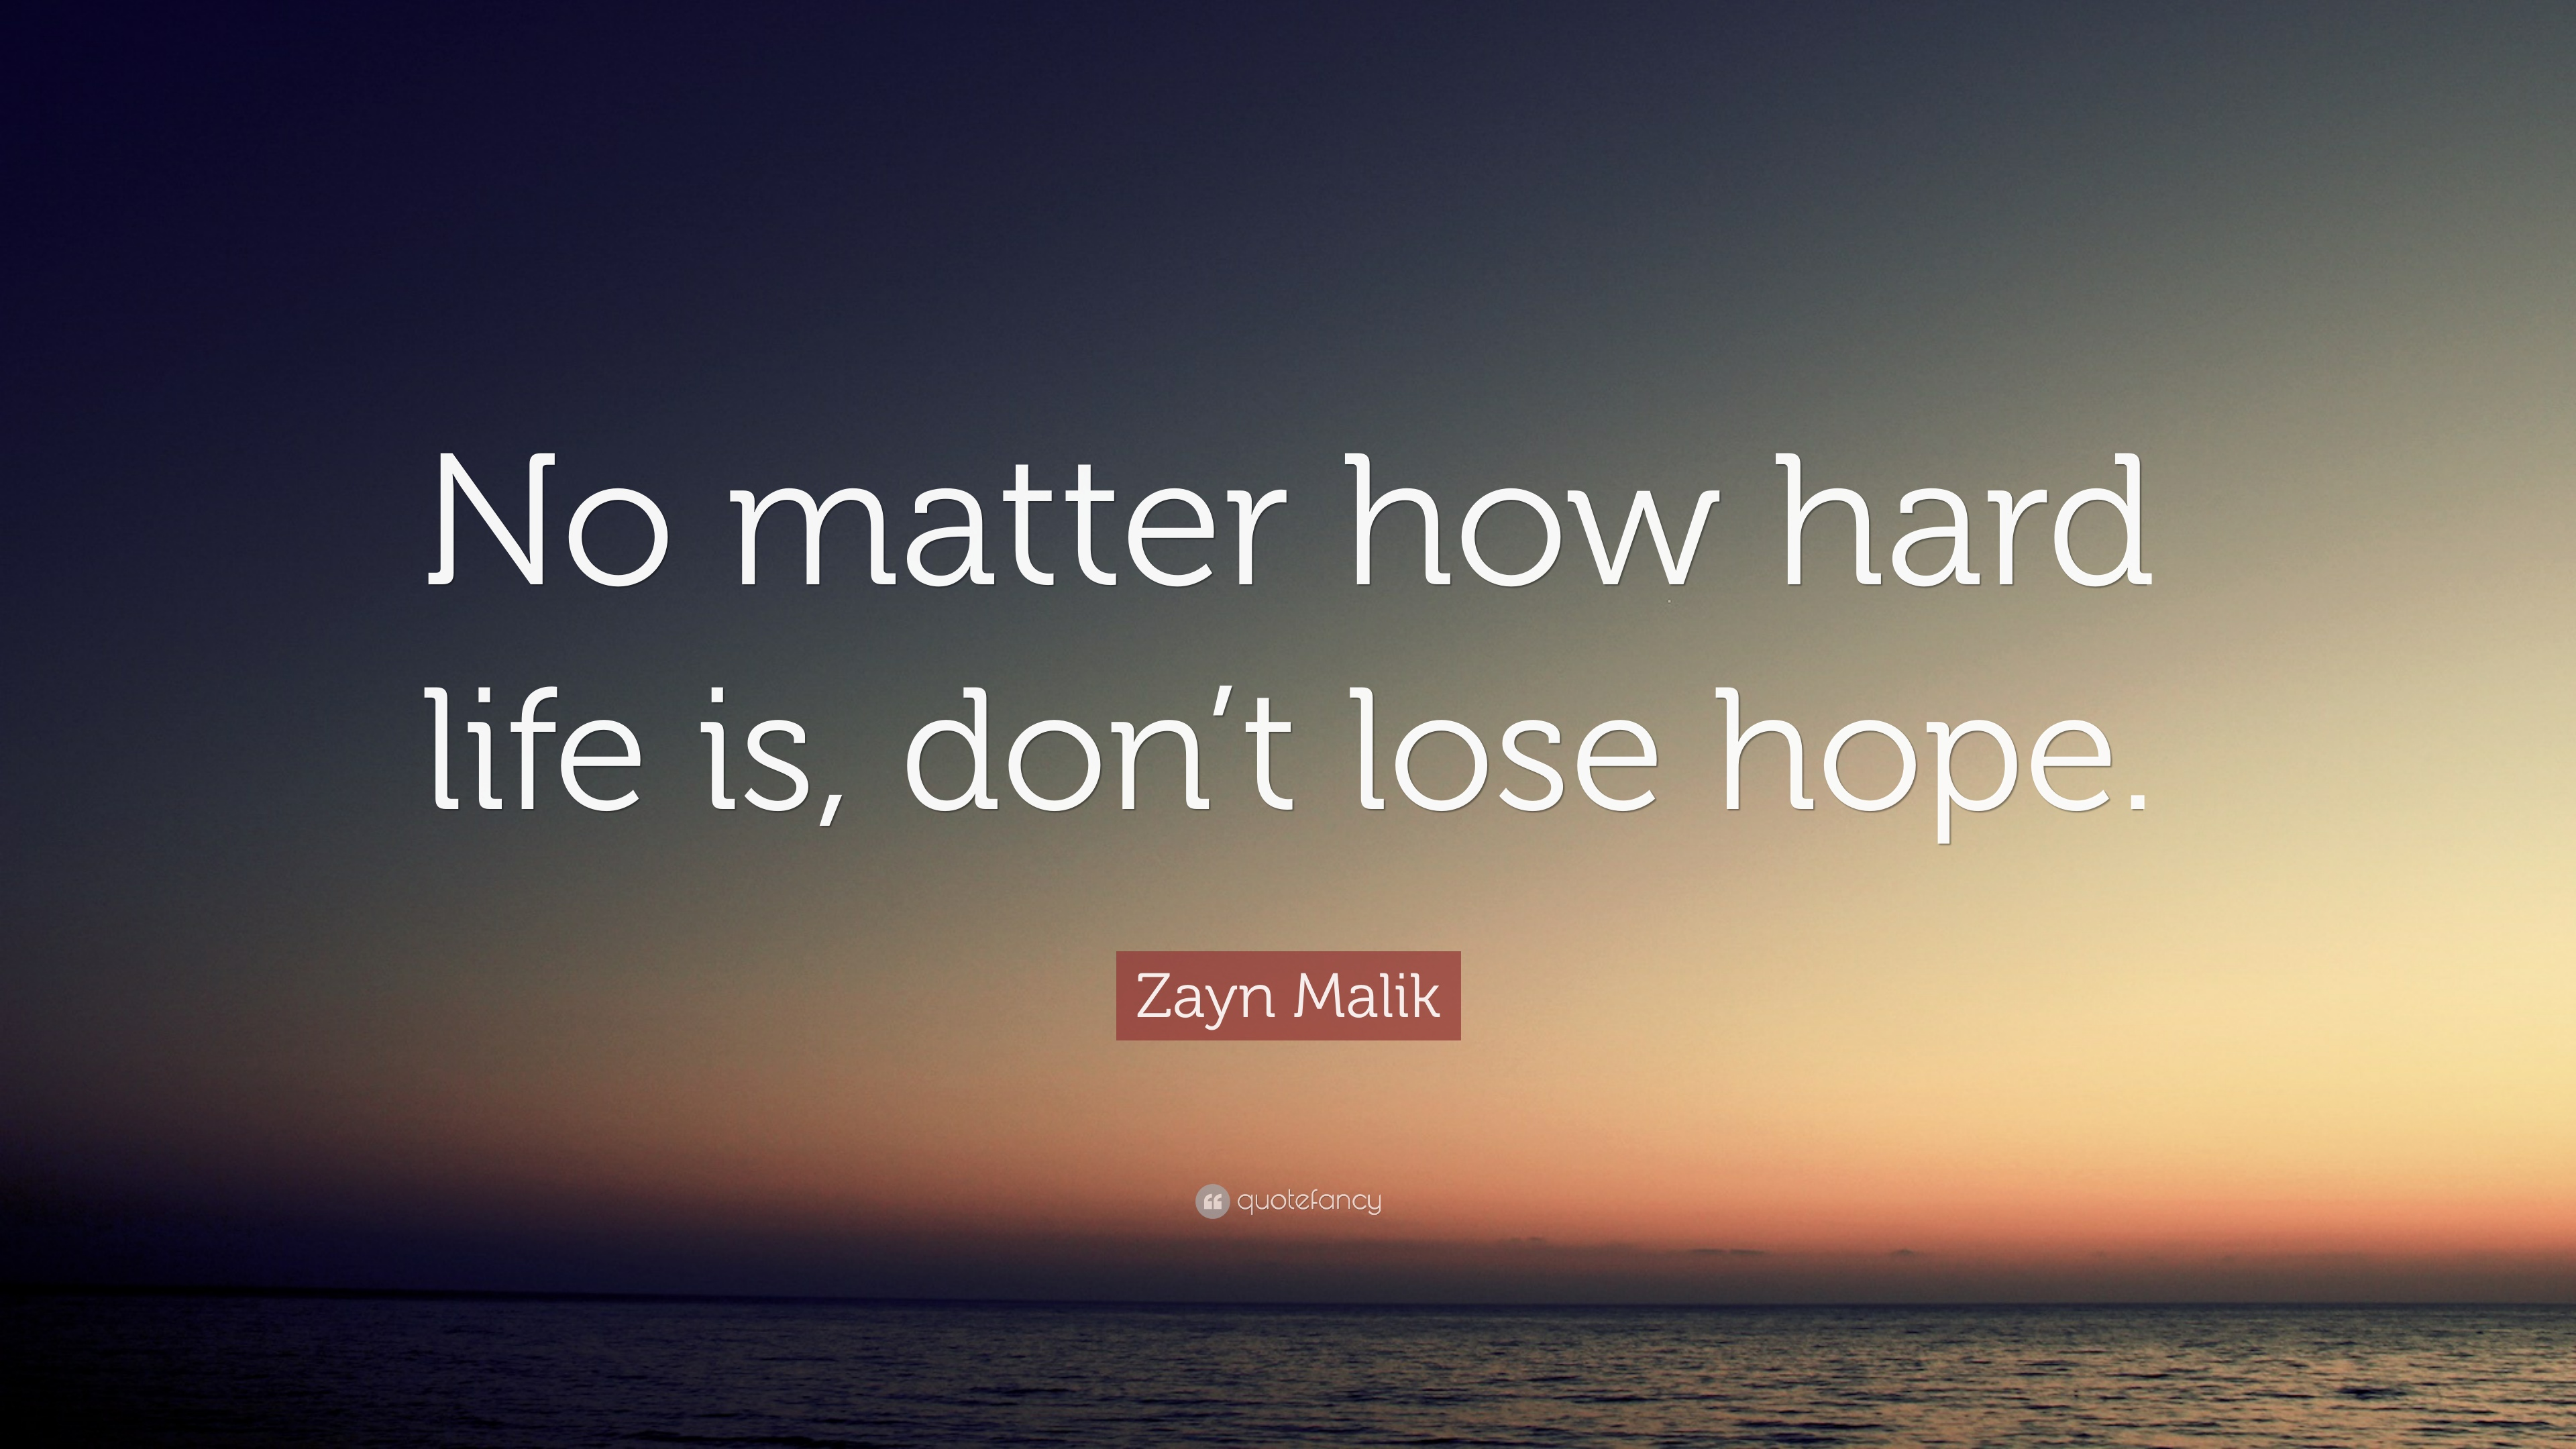 zayn malik quote no matter how hard life is dont lose